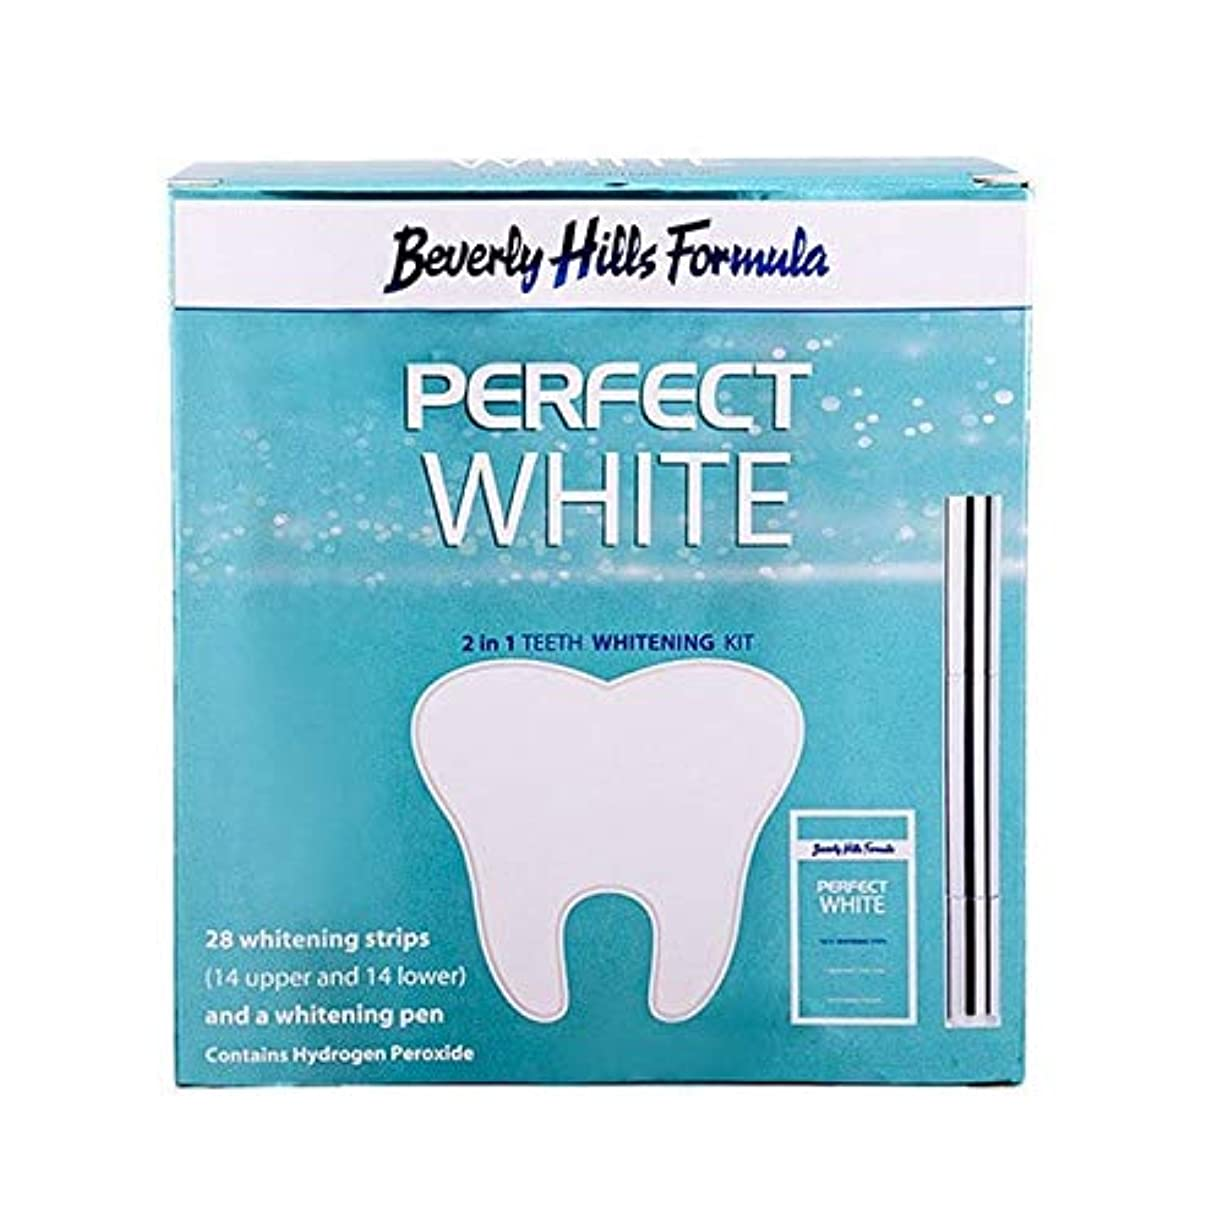 [Beverly Hills ] ビバリーヒルズ公式パーフェクトホワイト2 1でホワイトニングキット - Beverly Hills Formula Perfect White 2 in 1 Whitening kit...